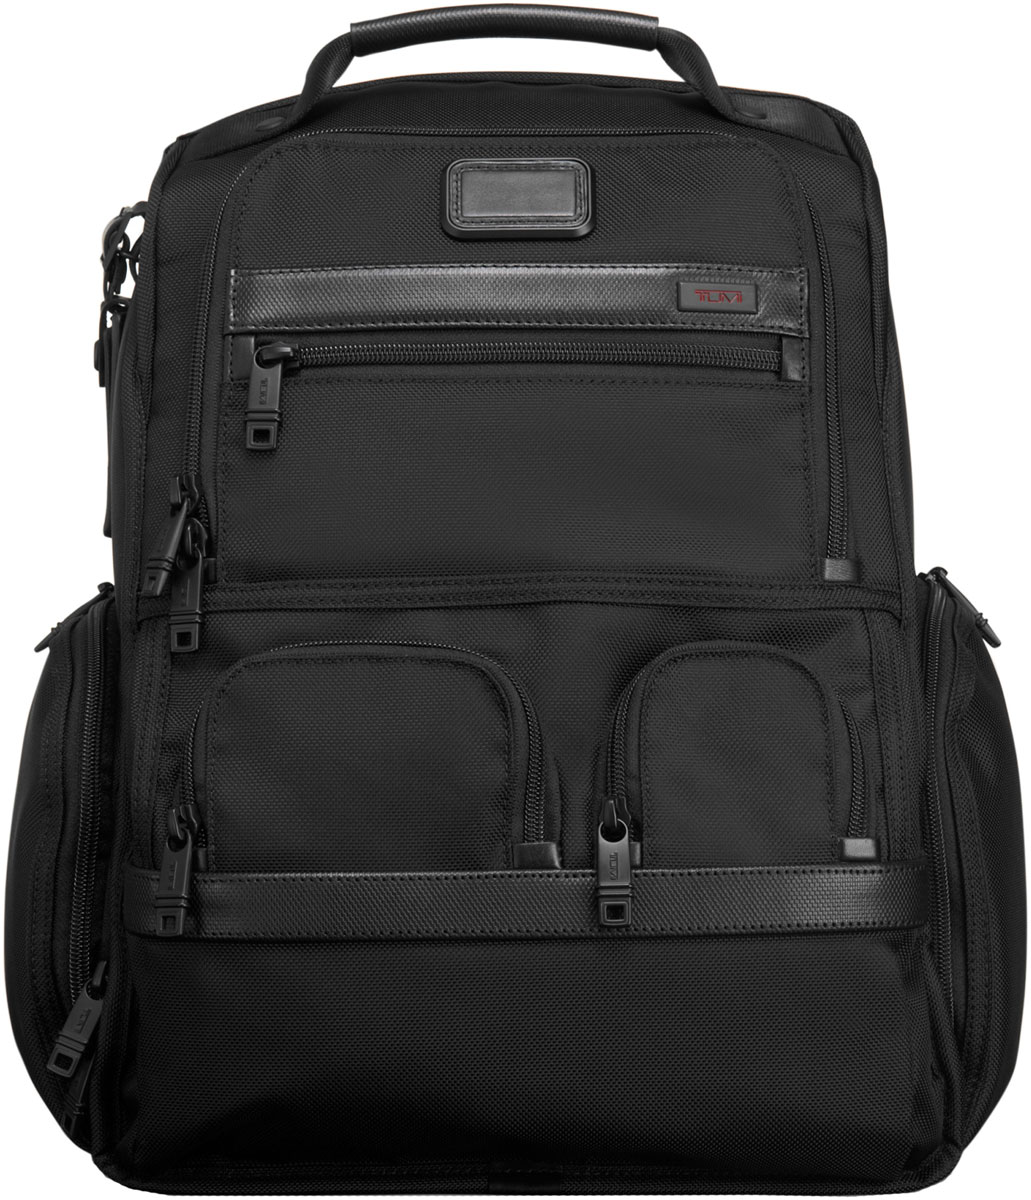 Tumi Black Alpha 2 Laptop Brief Pack 026173 Black